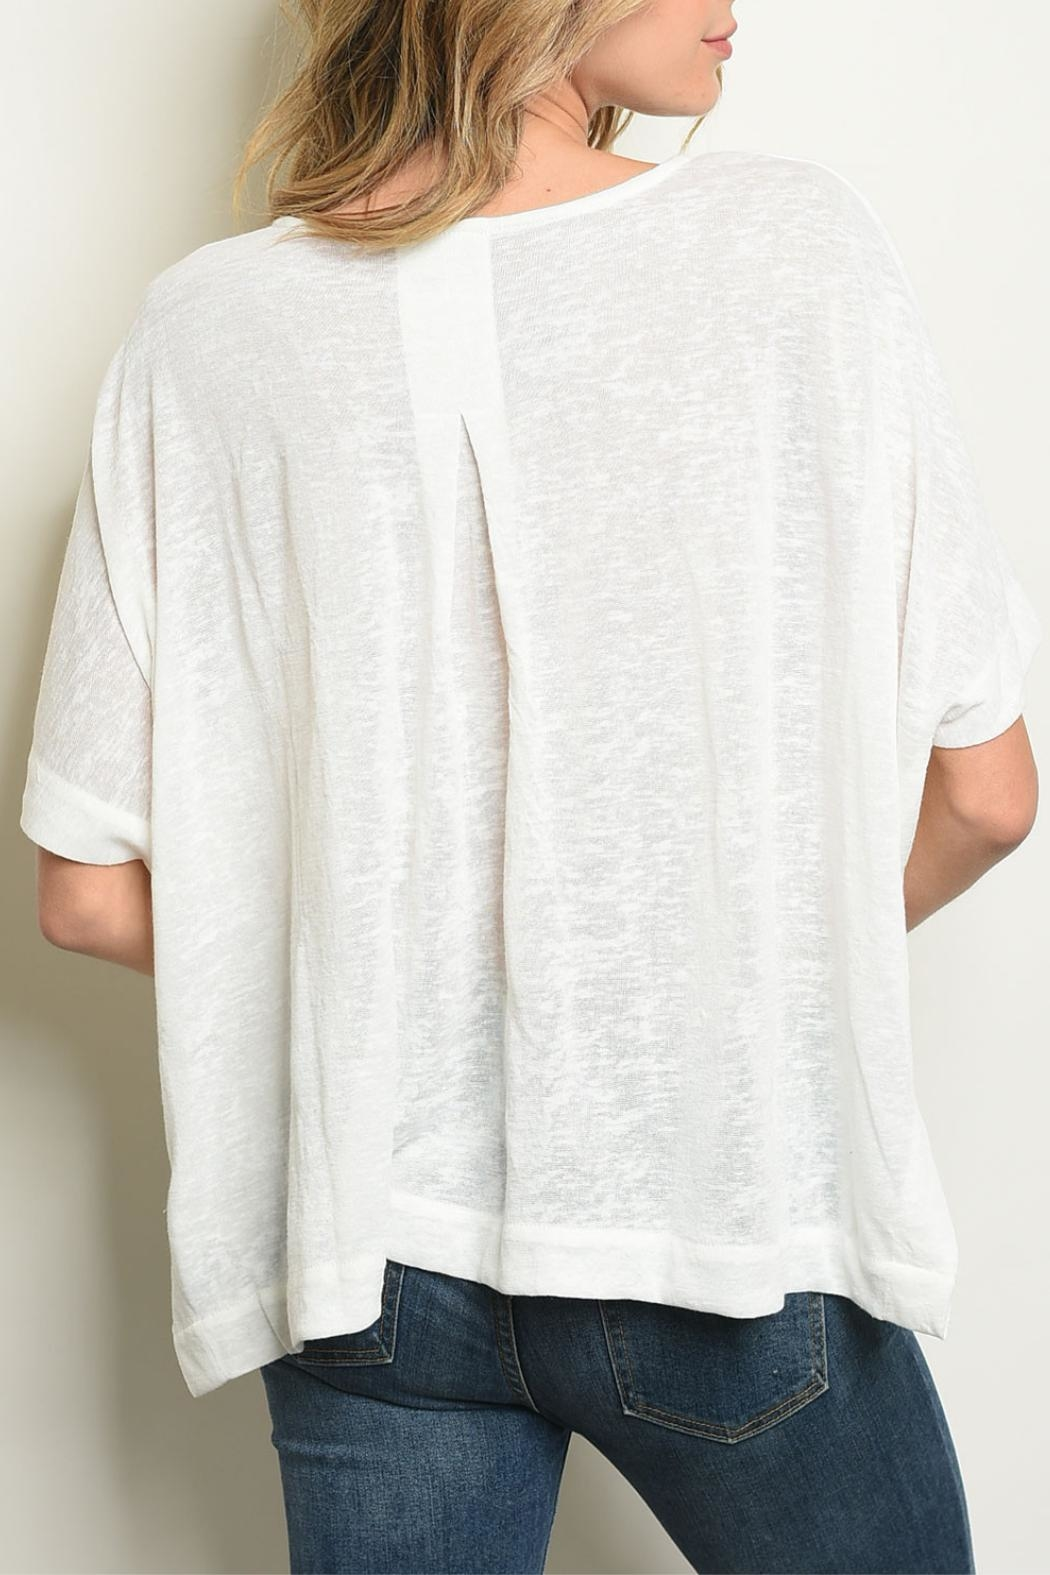 Very J Ivory Dolman Tunic - Front Full Image